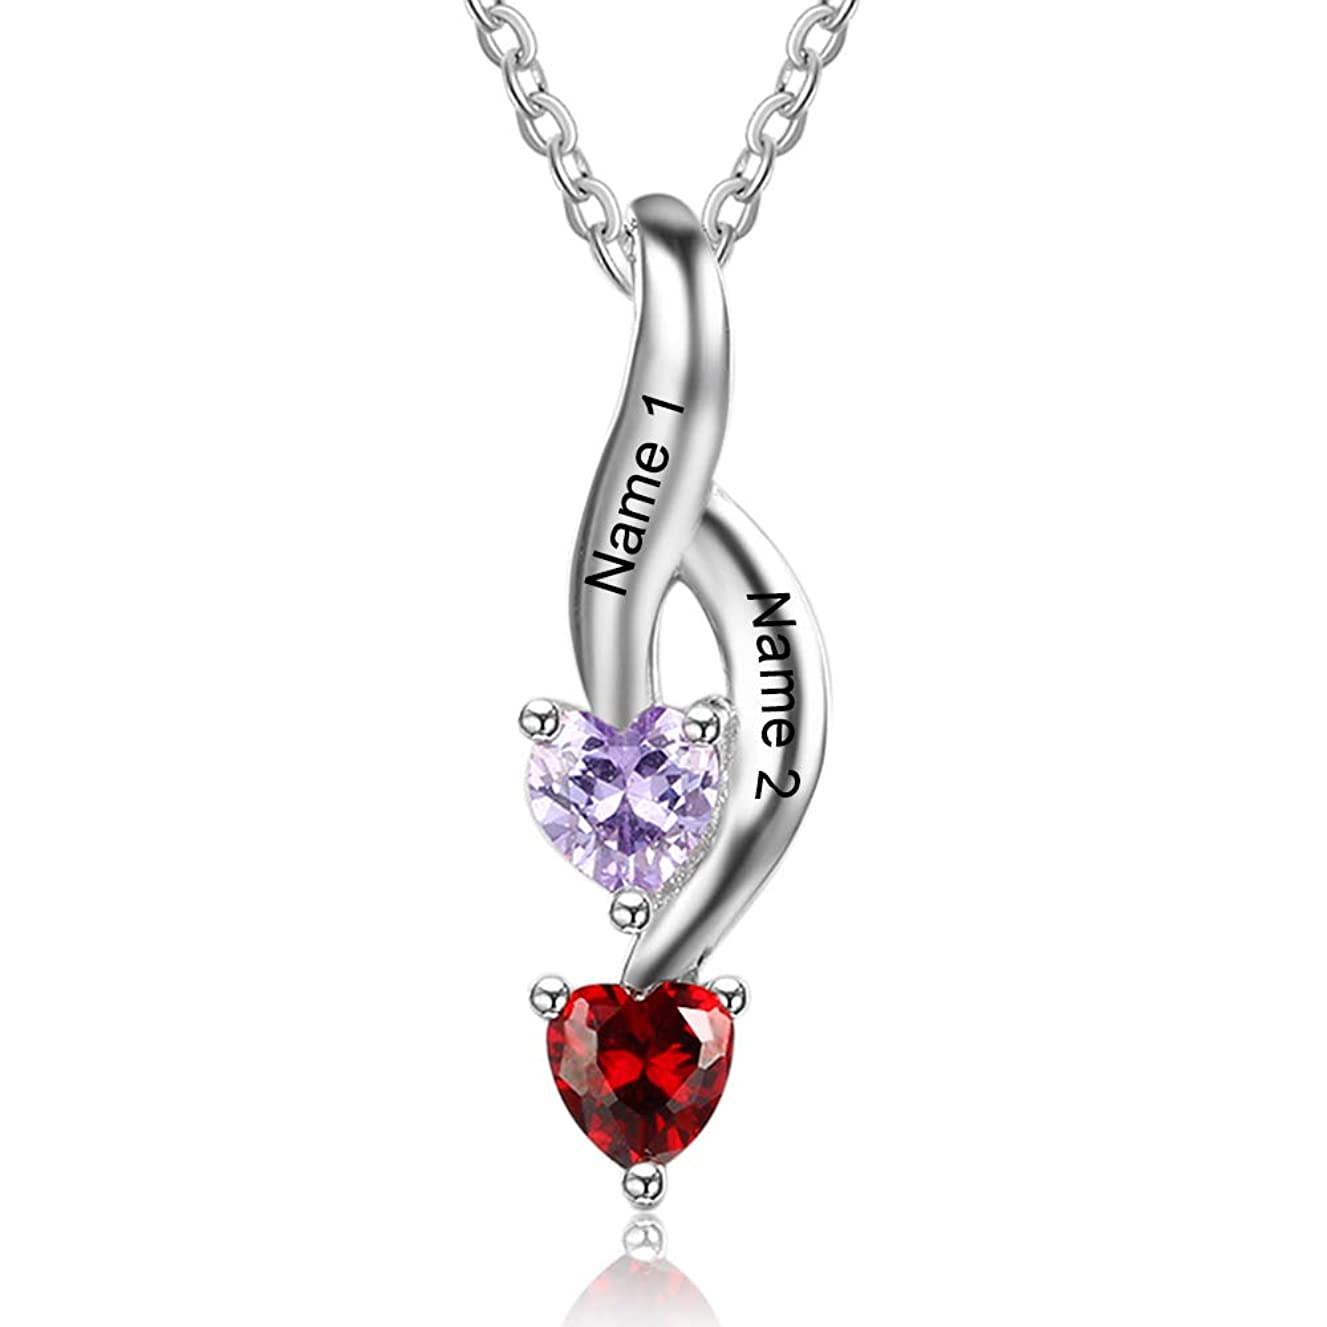 OPALSTOCK Personalized Name Necklace for Women with 2 Heart Simulated Birthstone Custom Couple Pendant Necklace for Her